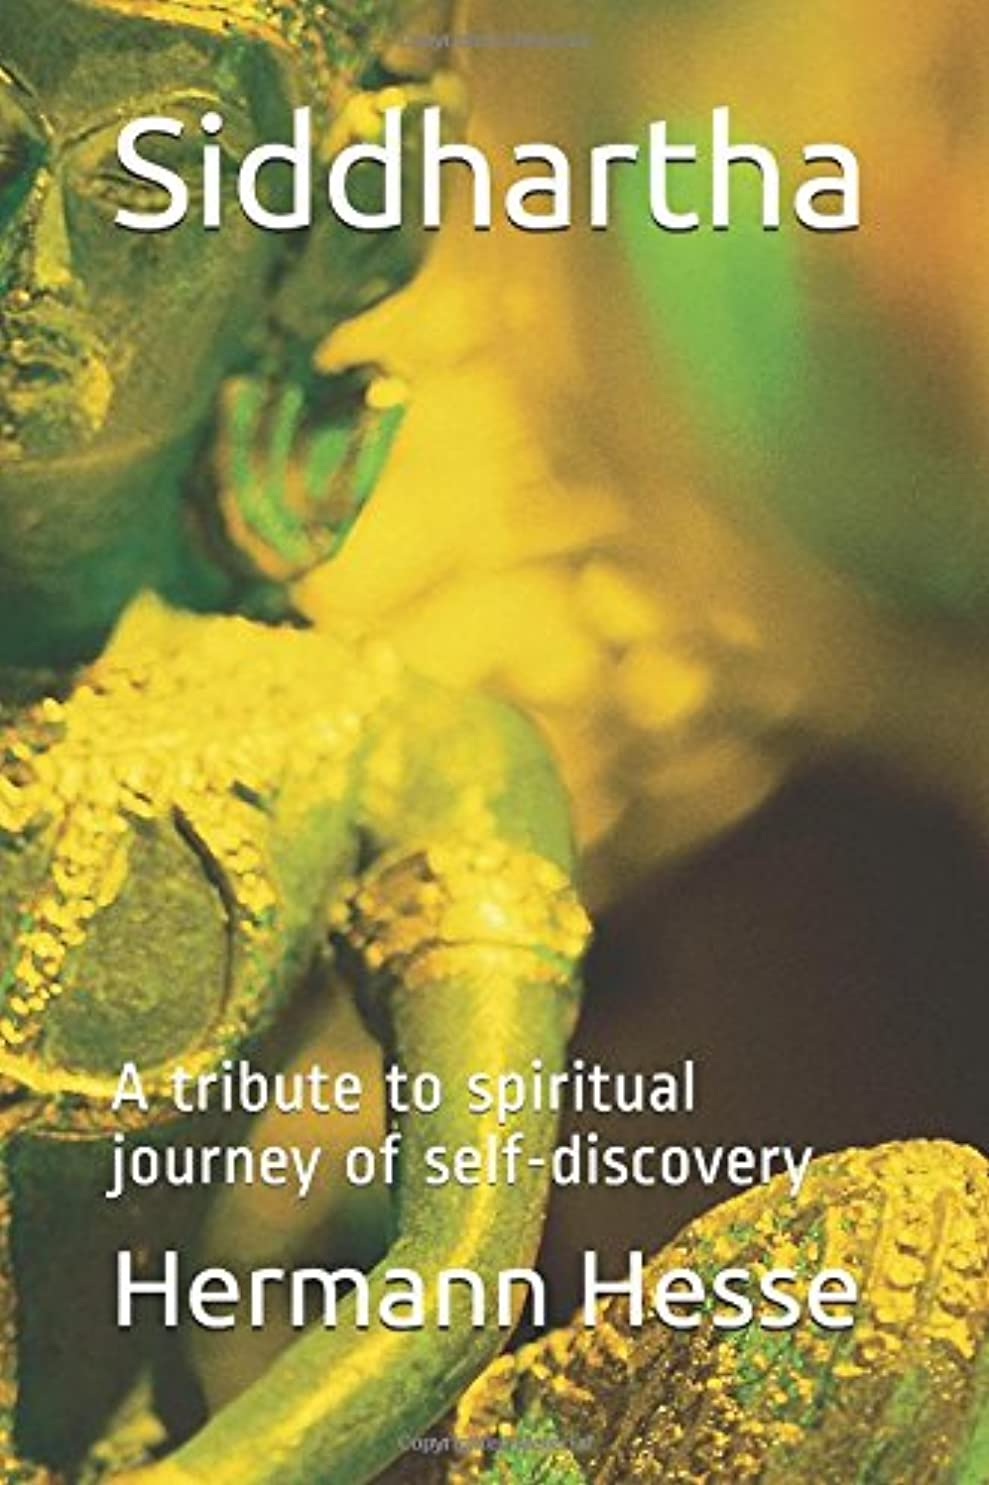 無視抜け目のないパイプラインSiddhartha: A tribute to spiritual journey of self-discovery